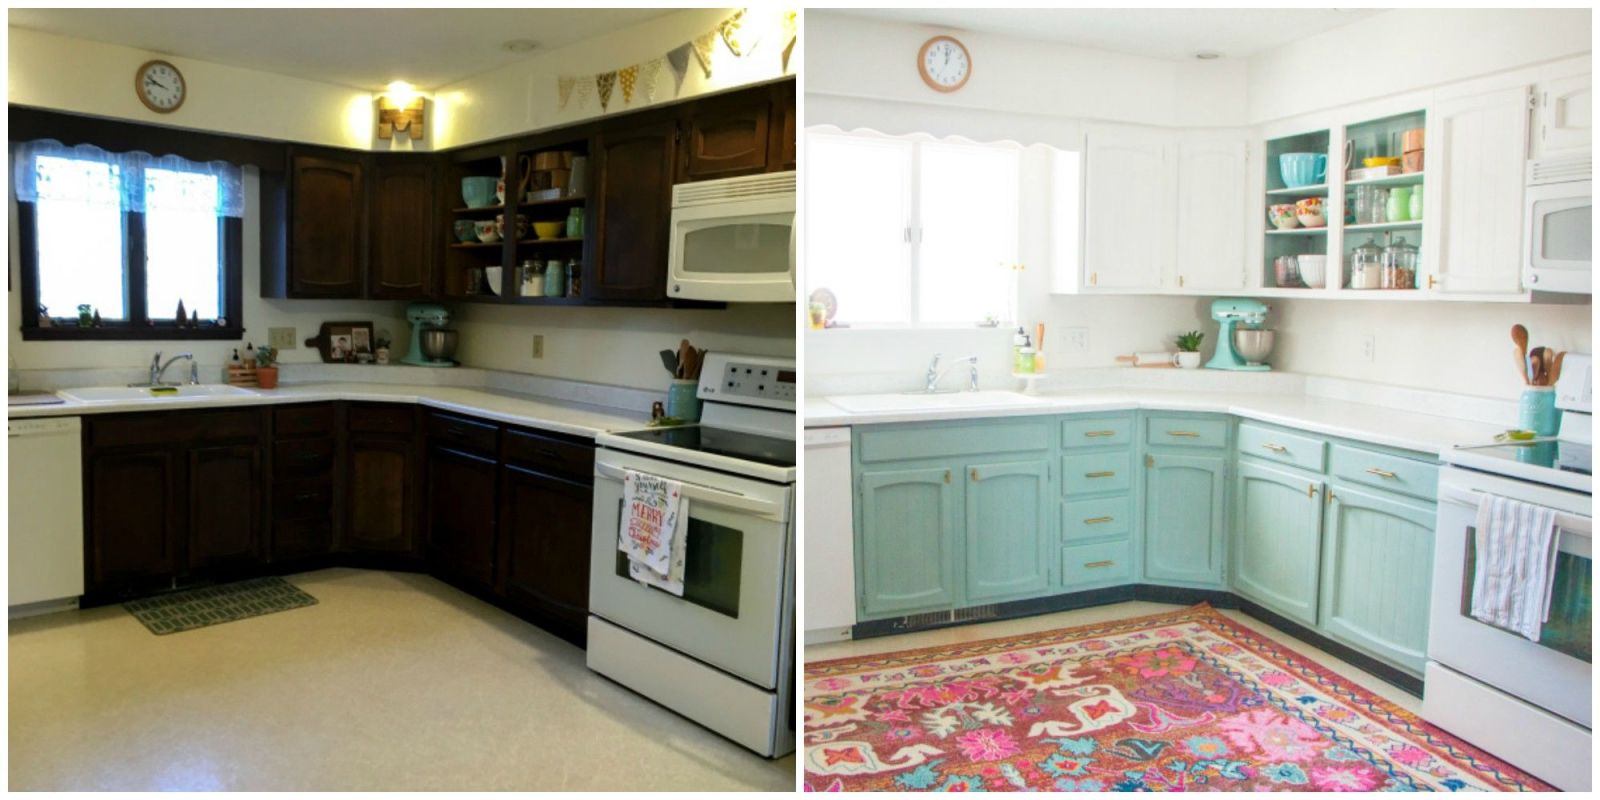 This Bright And Cheery Kitchen Renovation Cost Just Cheap - Kitchen before and after remodels